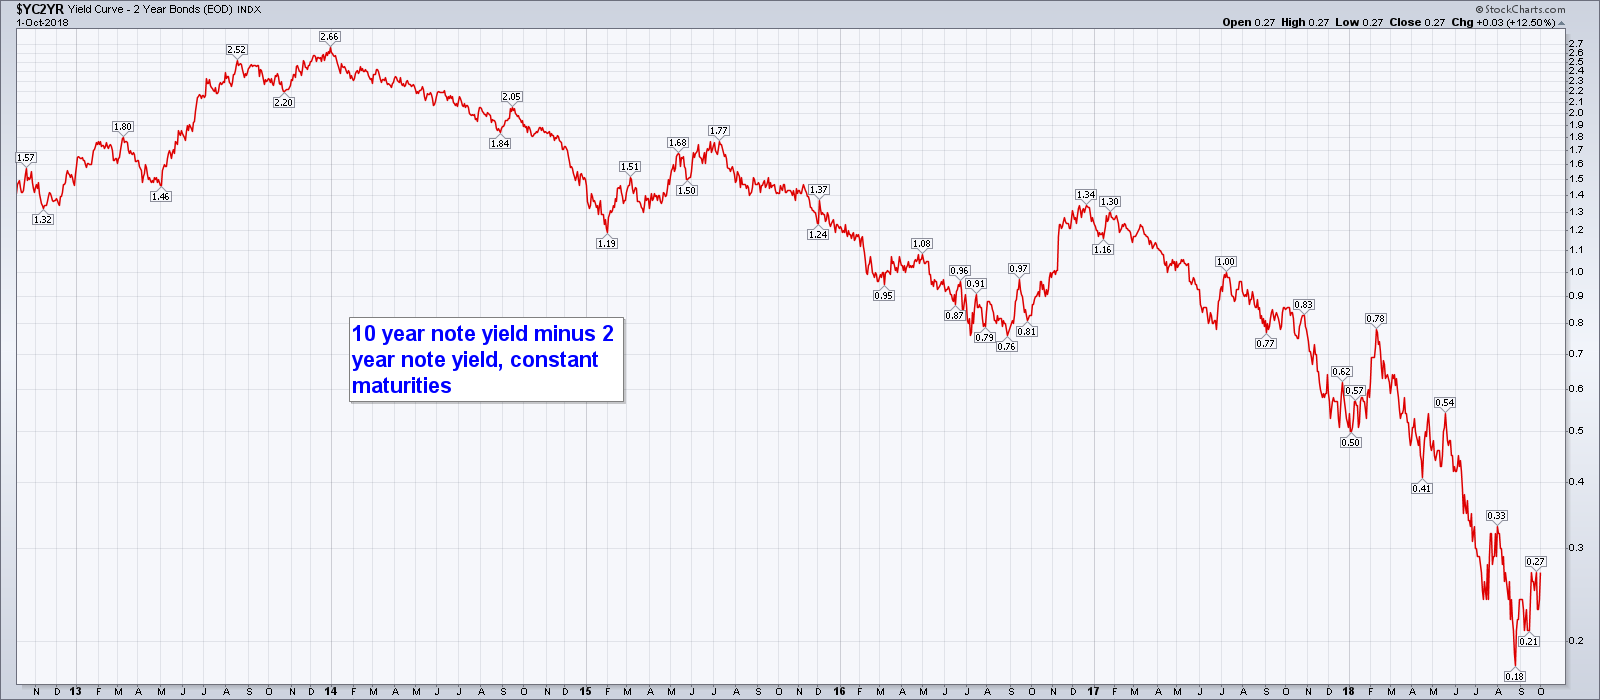 US Yield Curve, Nov 2012 - Oct 2018